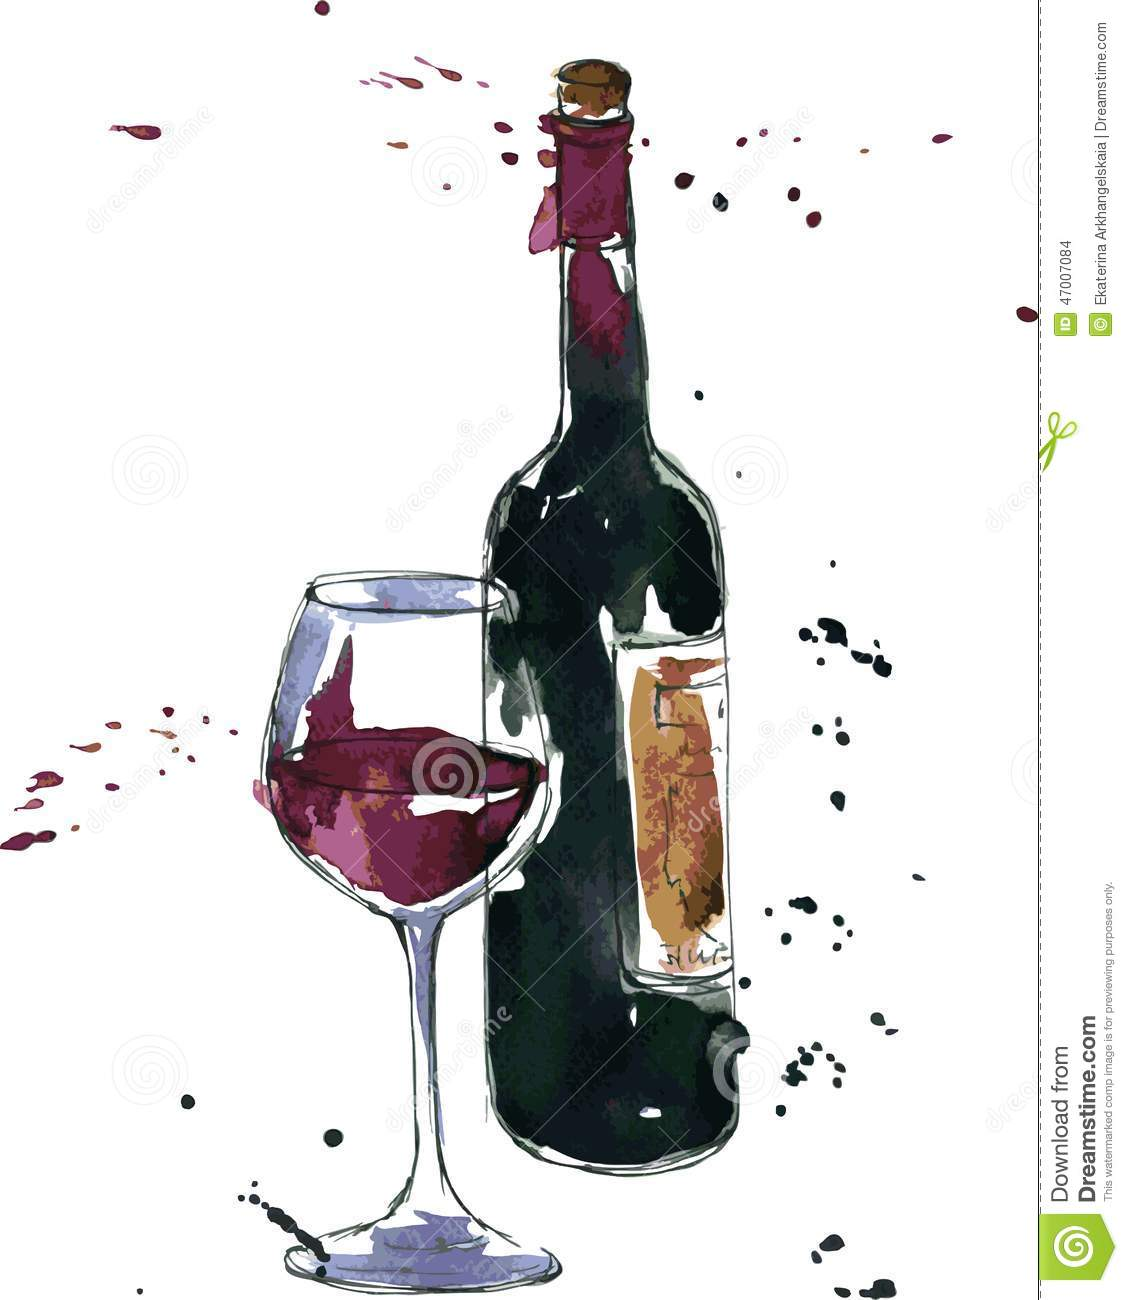 Wine Bottle And Glass Stock Vector - Image: 47007084